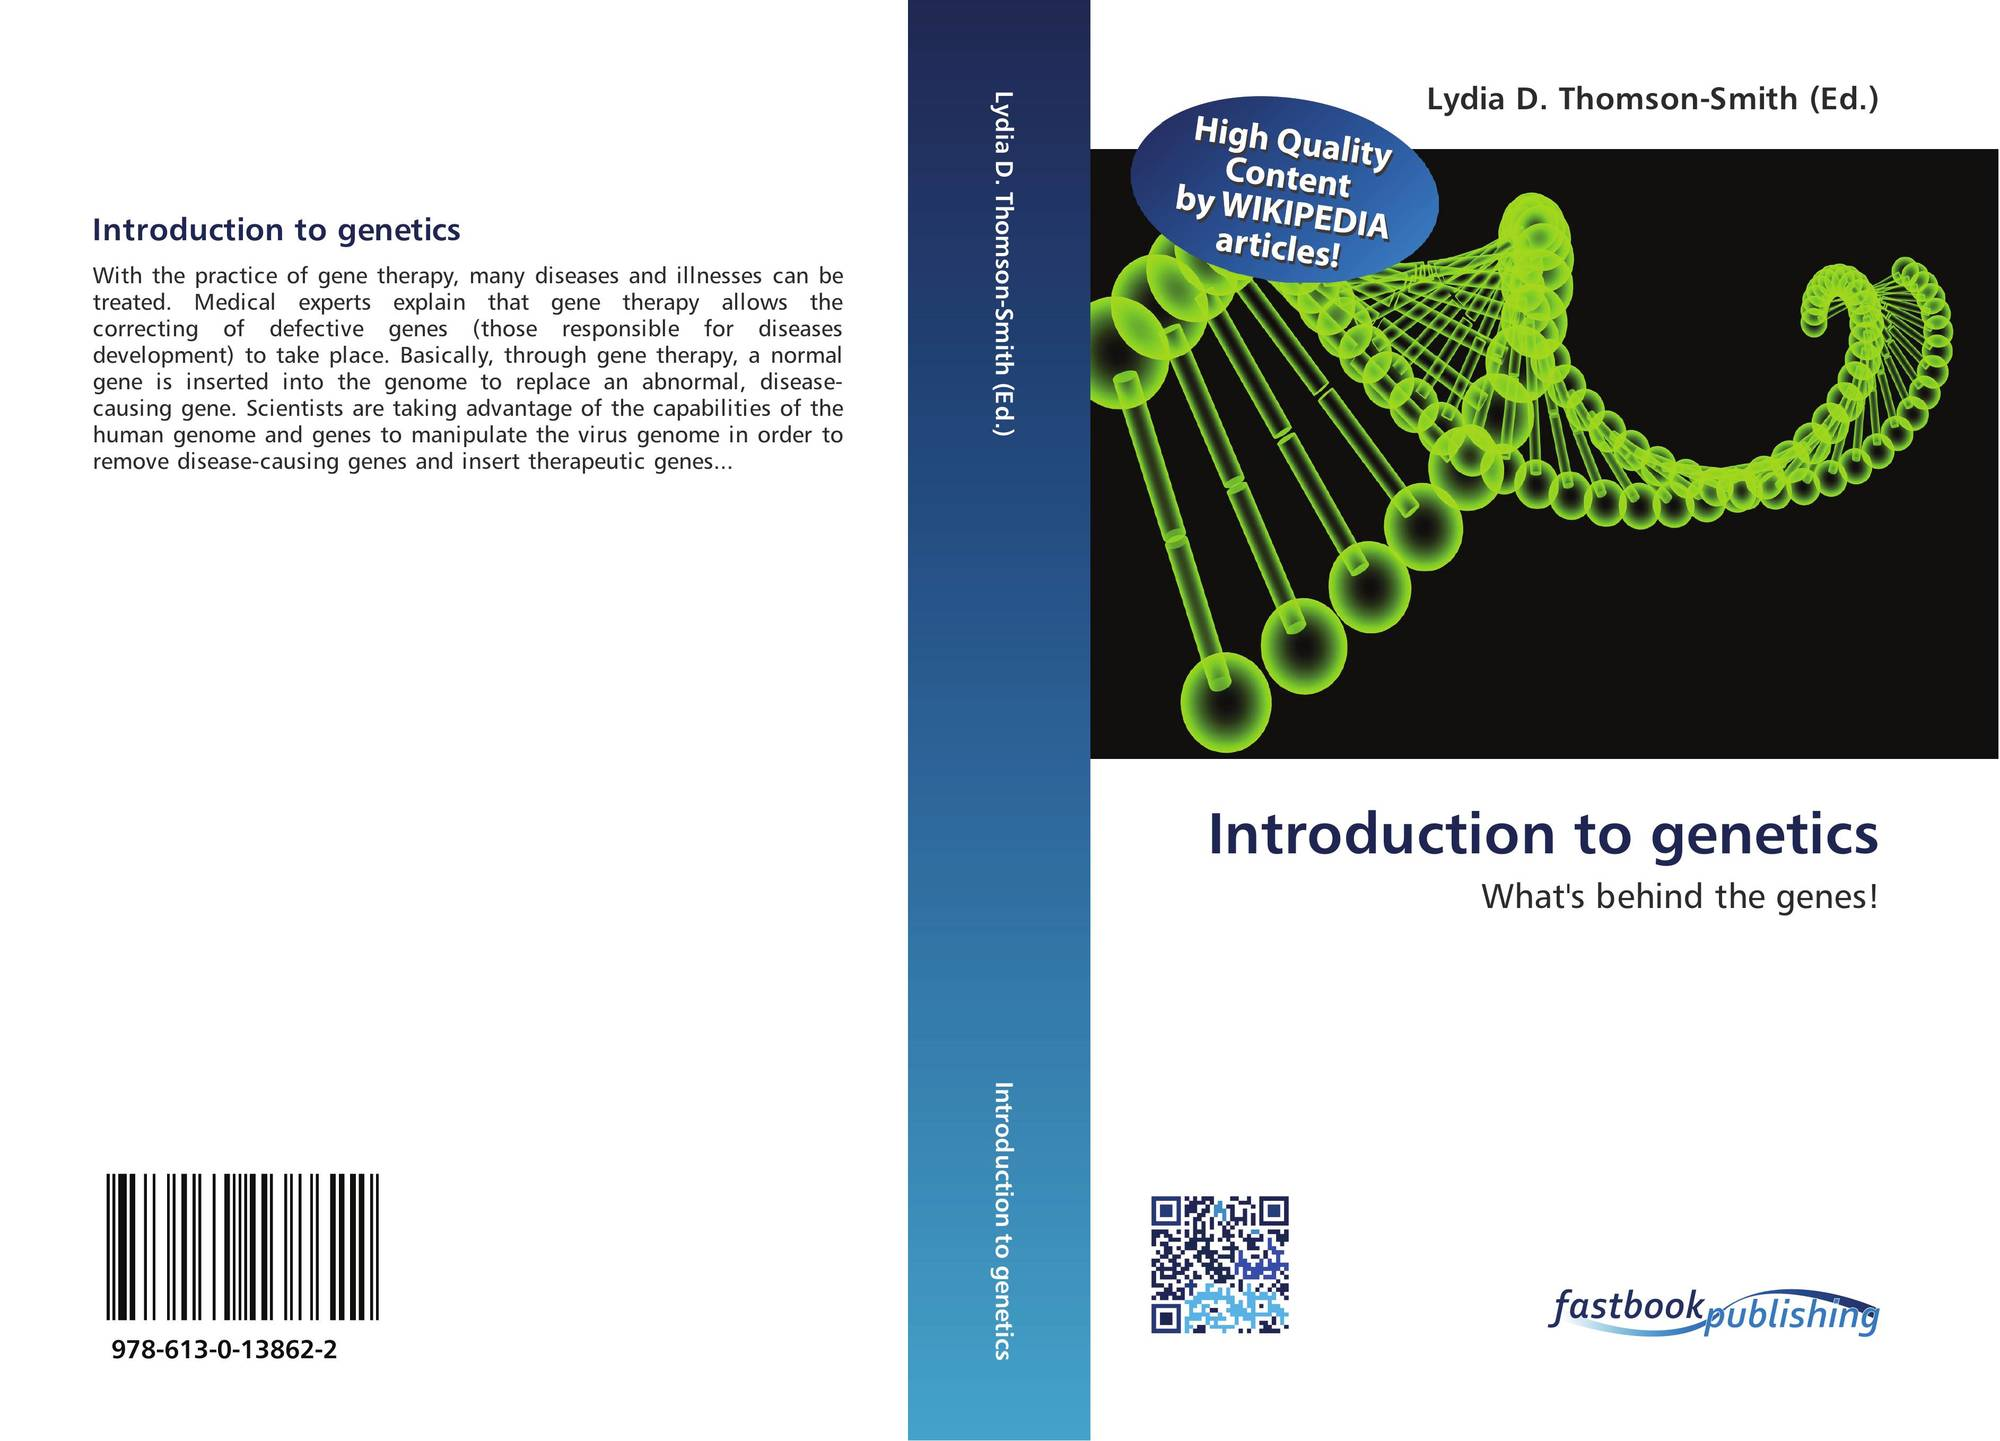 an introduction to genetic disorders The primary nih organization for research on genetic disorders is the eunice kennedy shriver national institute of child health and human development disclaimers medlineplus links to health information from the national institutes of health and other federal government agencies.